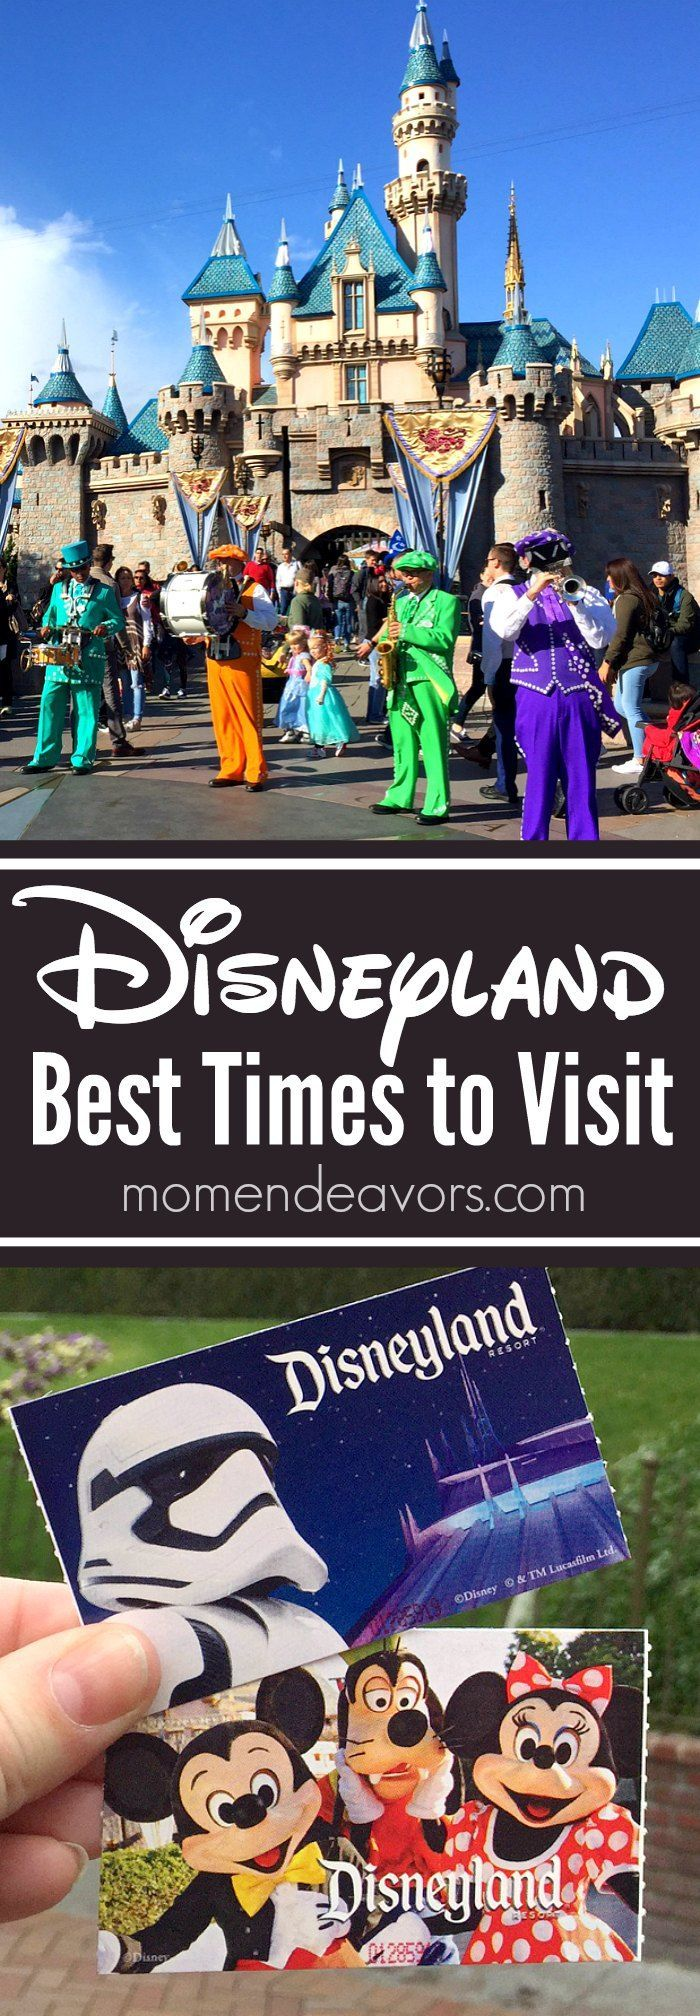 Disneyland Trip Planning - Best Times to Visit the Disneyland Resort!